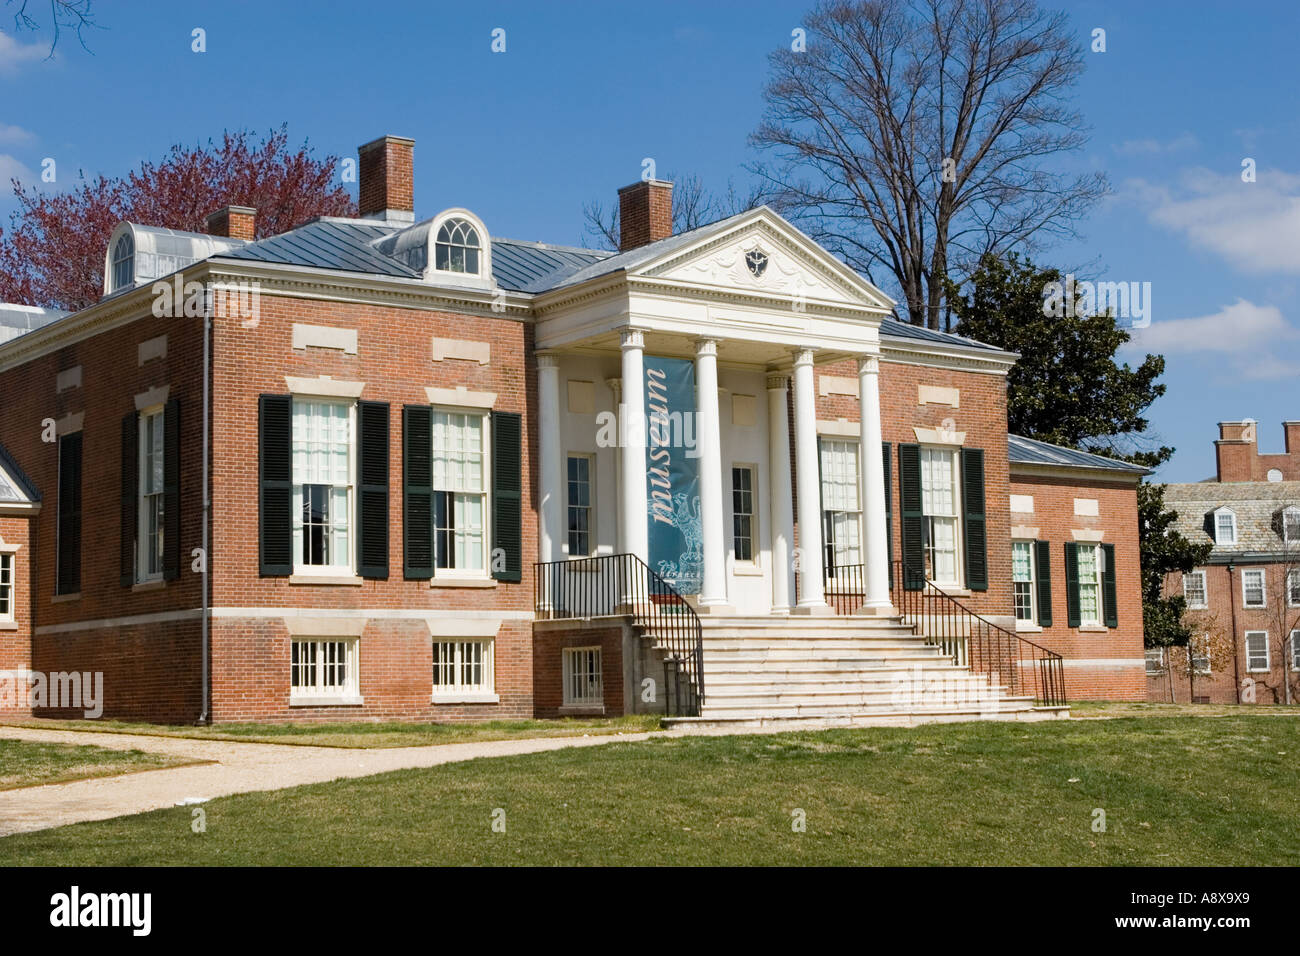 Home university of maryland baltimore - Homewood Is Federal Style Home And Museum On Campus Of Johns Hopkins University Charles Street Baltimore Maryland